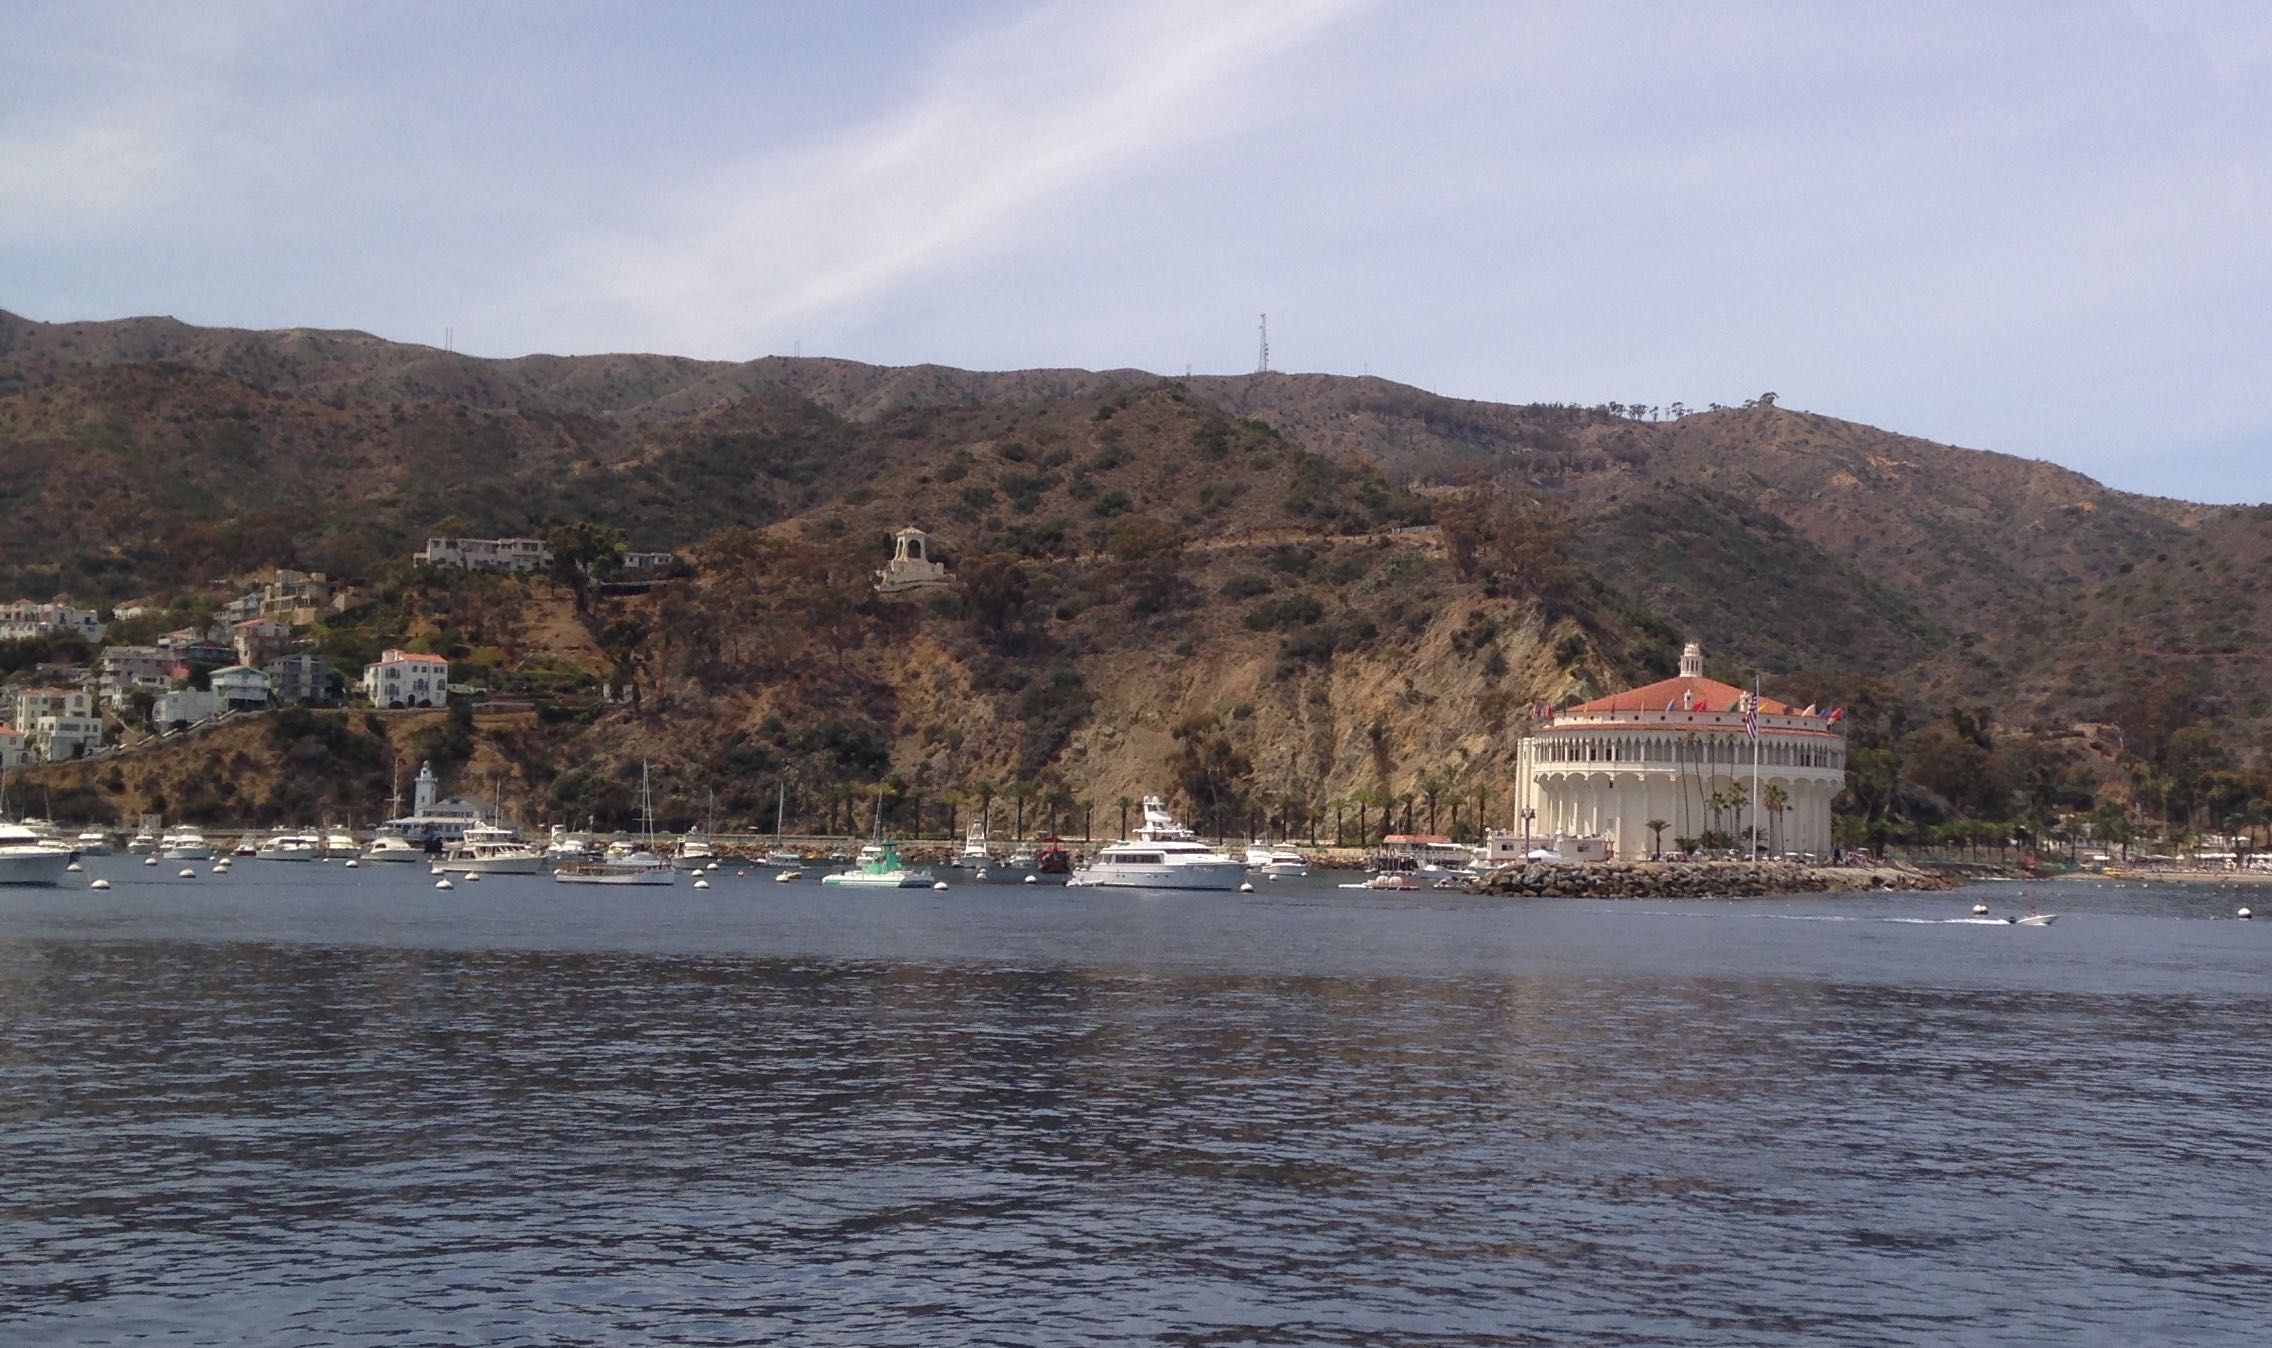 Avalon harbor and the casino from the boat